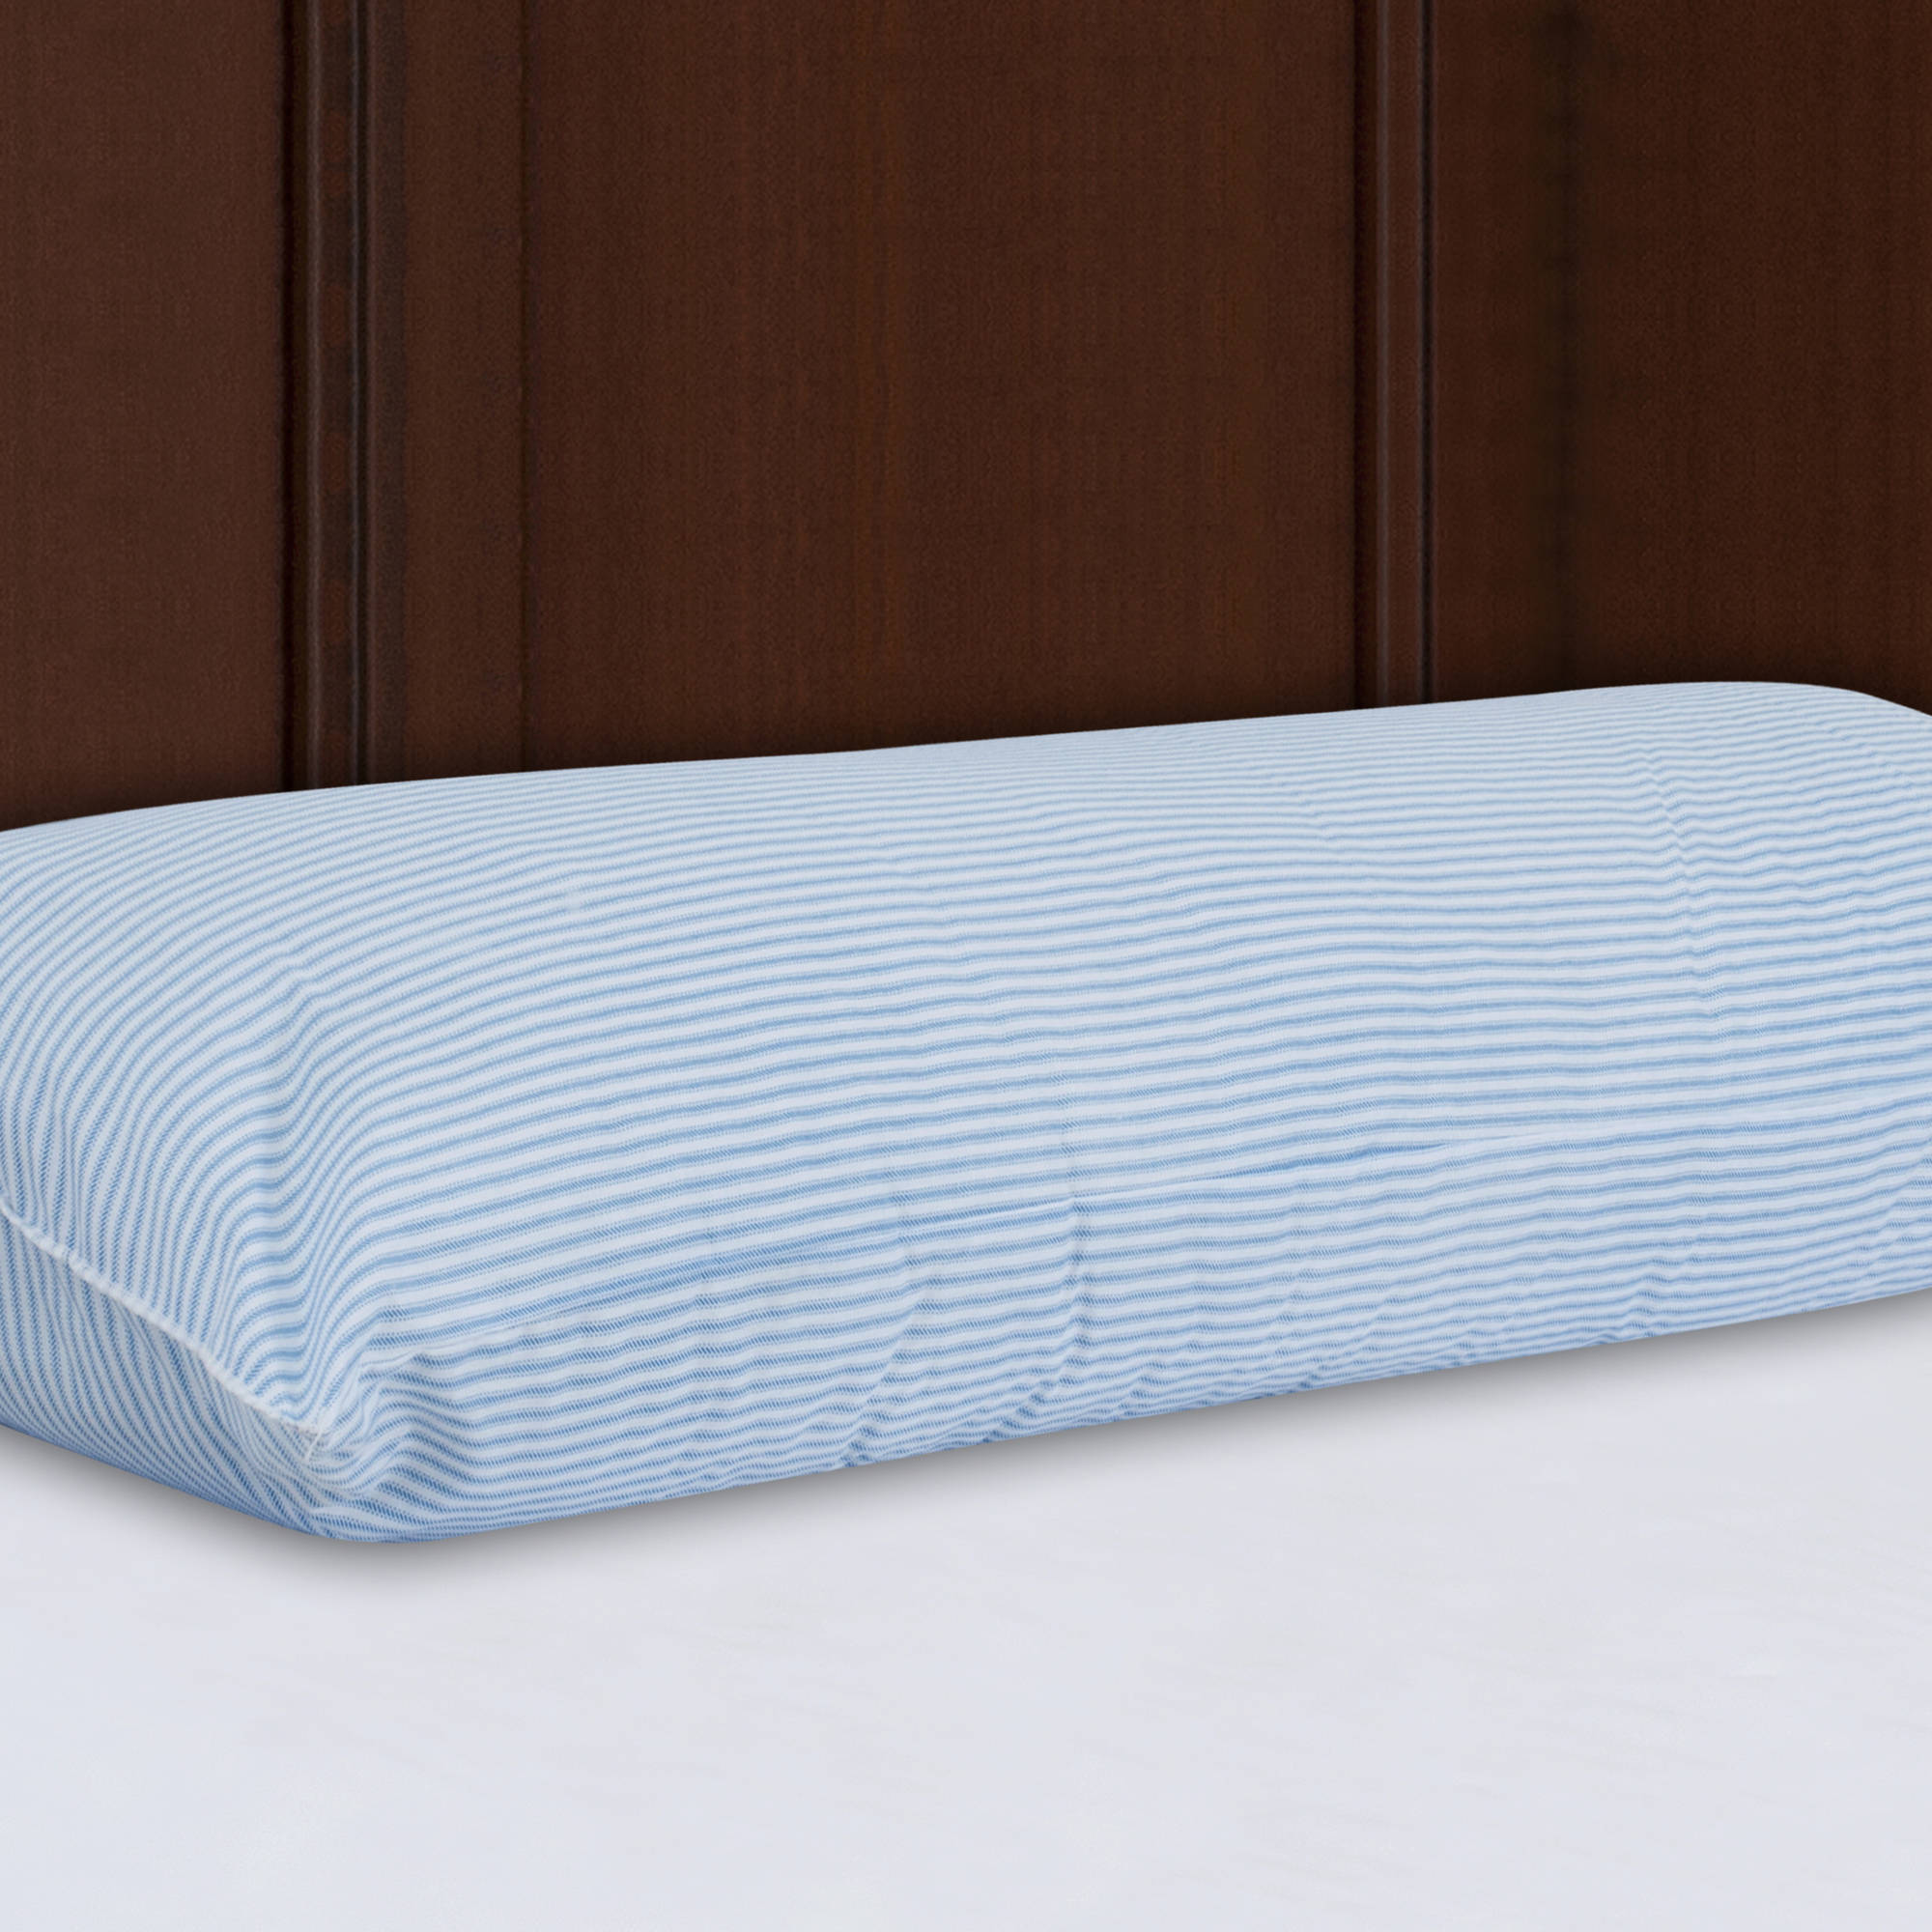 "Mainstays HUGE Body Pillow in Blue and White Stripe, 20"" x 54"""